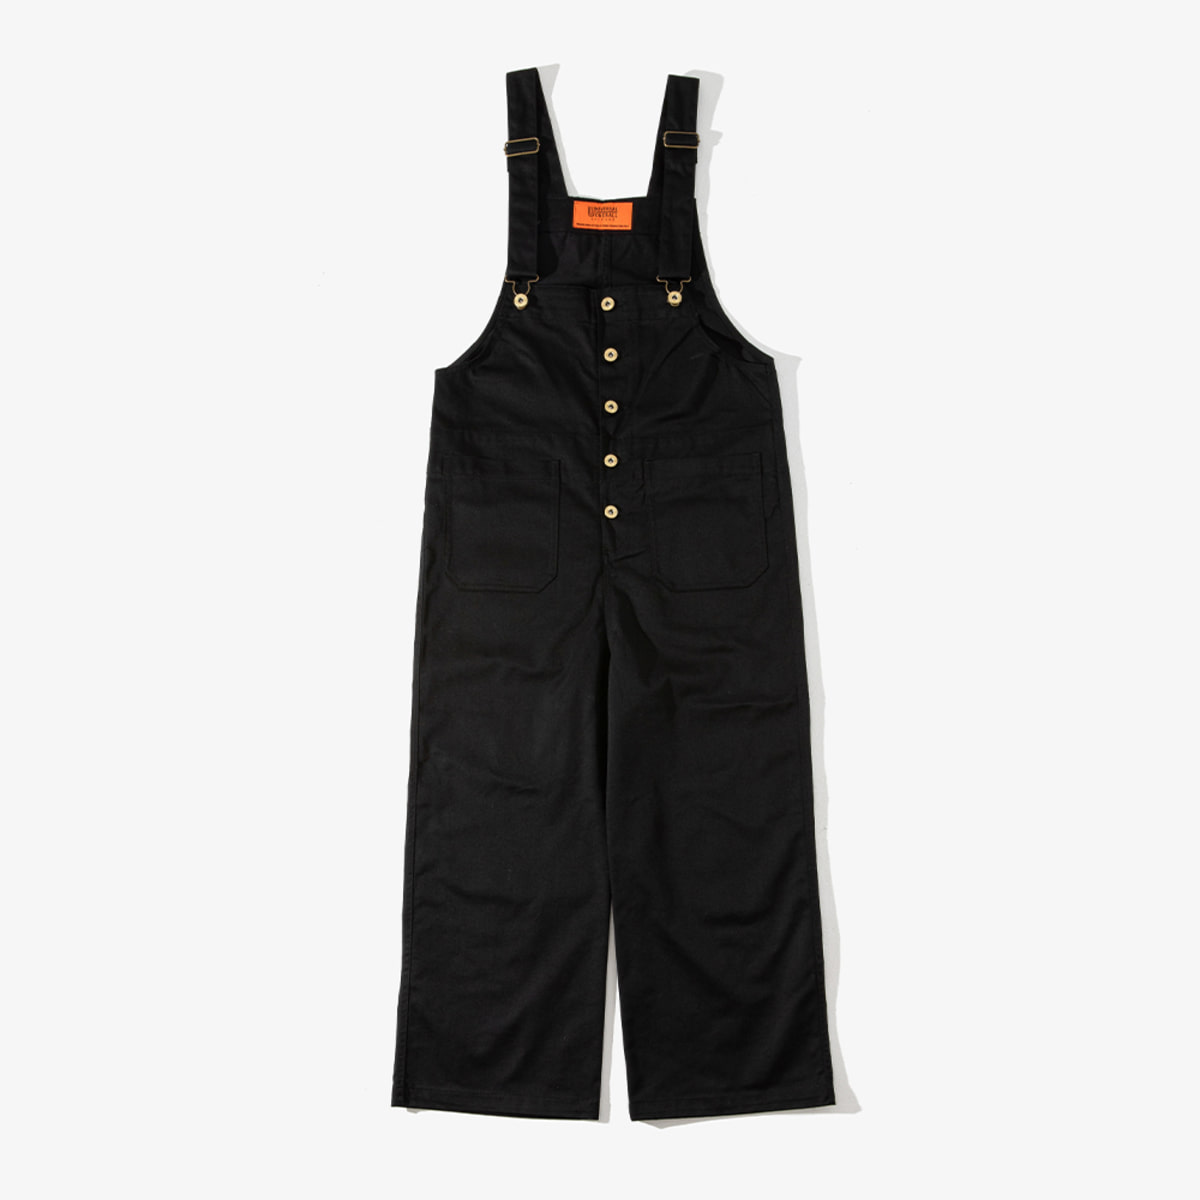 WOMENS BASIC OVERALL BLACK